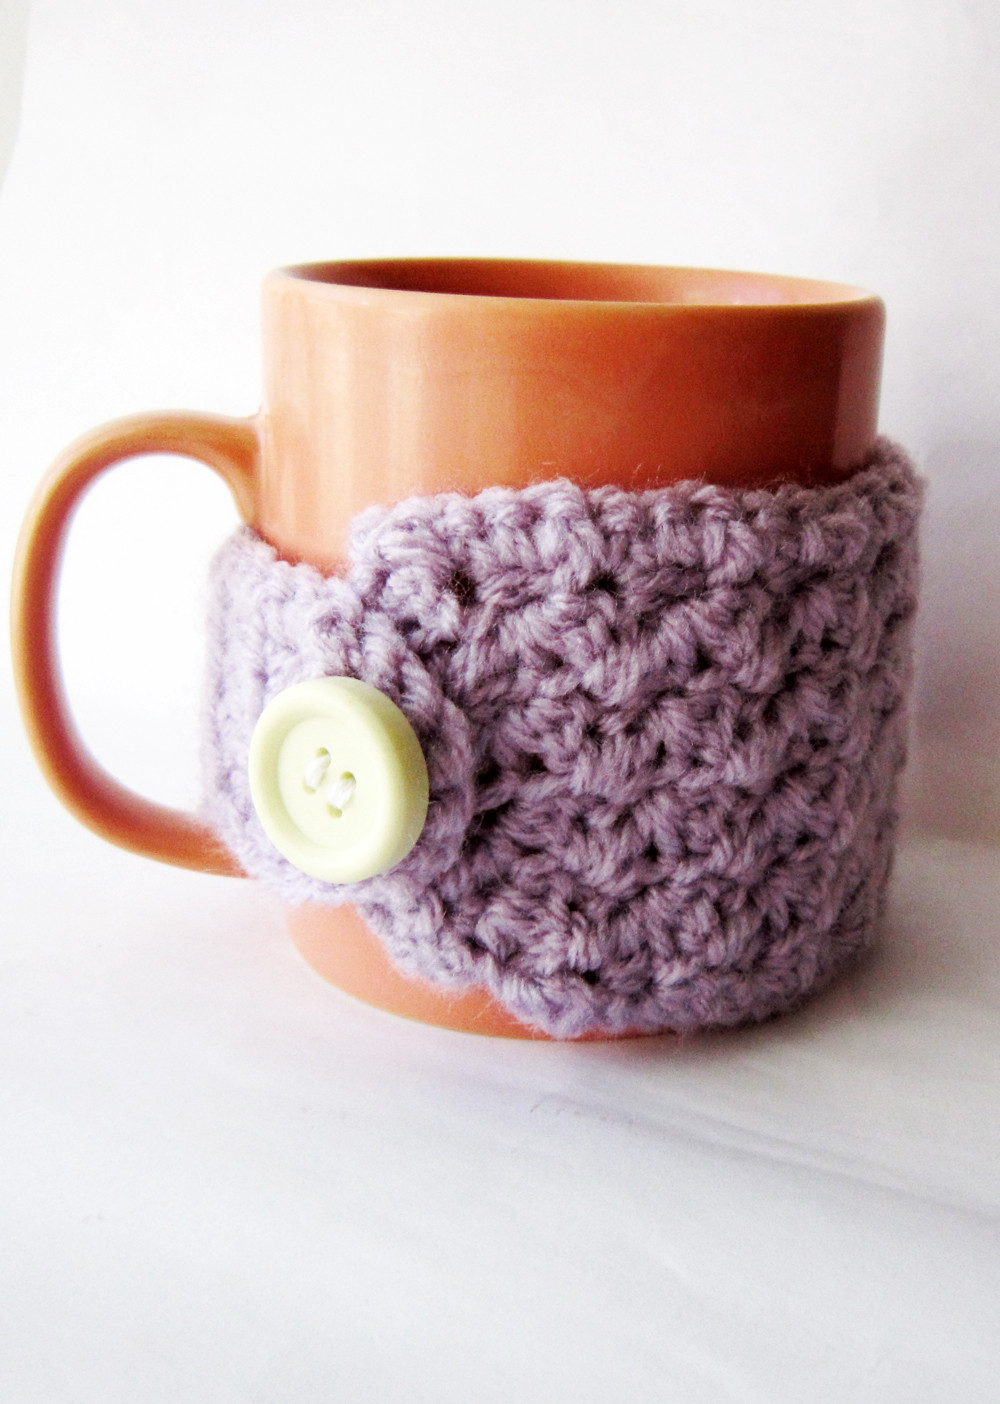 Crochet Coffee Cup Cozy Inspirational Easy Crochet Mug Cozy Free Pattern Akamatra Of Crochet Coffee Cup Cozy Awesome Crochet Coffee Cozy Amy Latta Creations